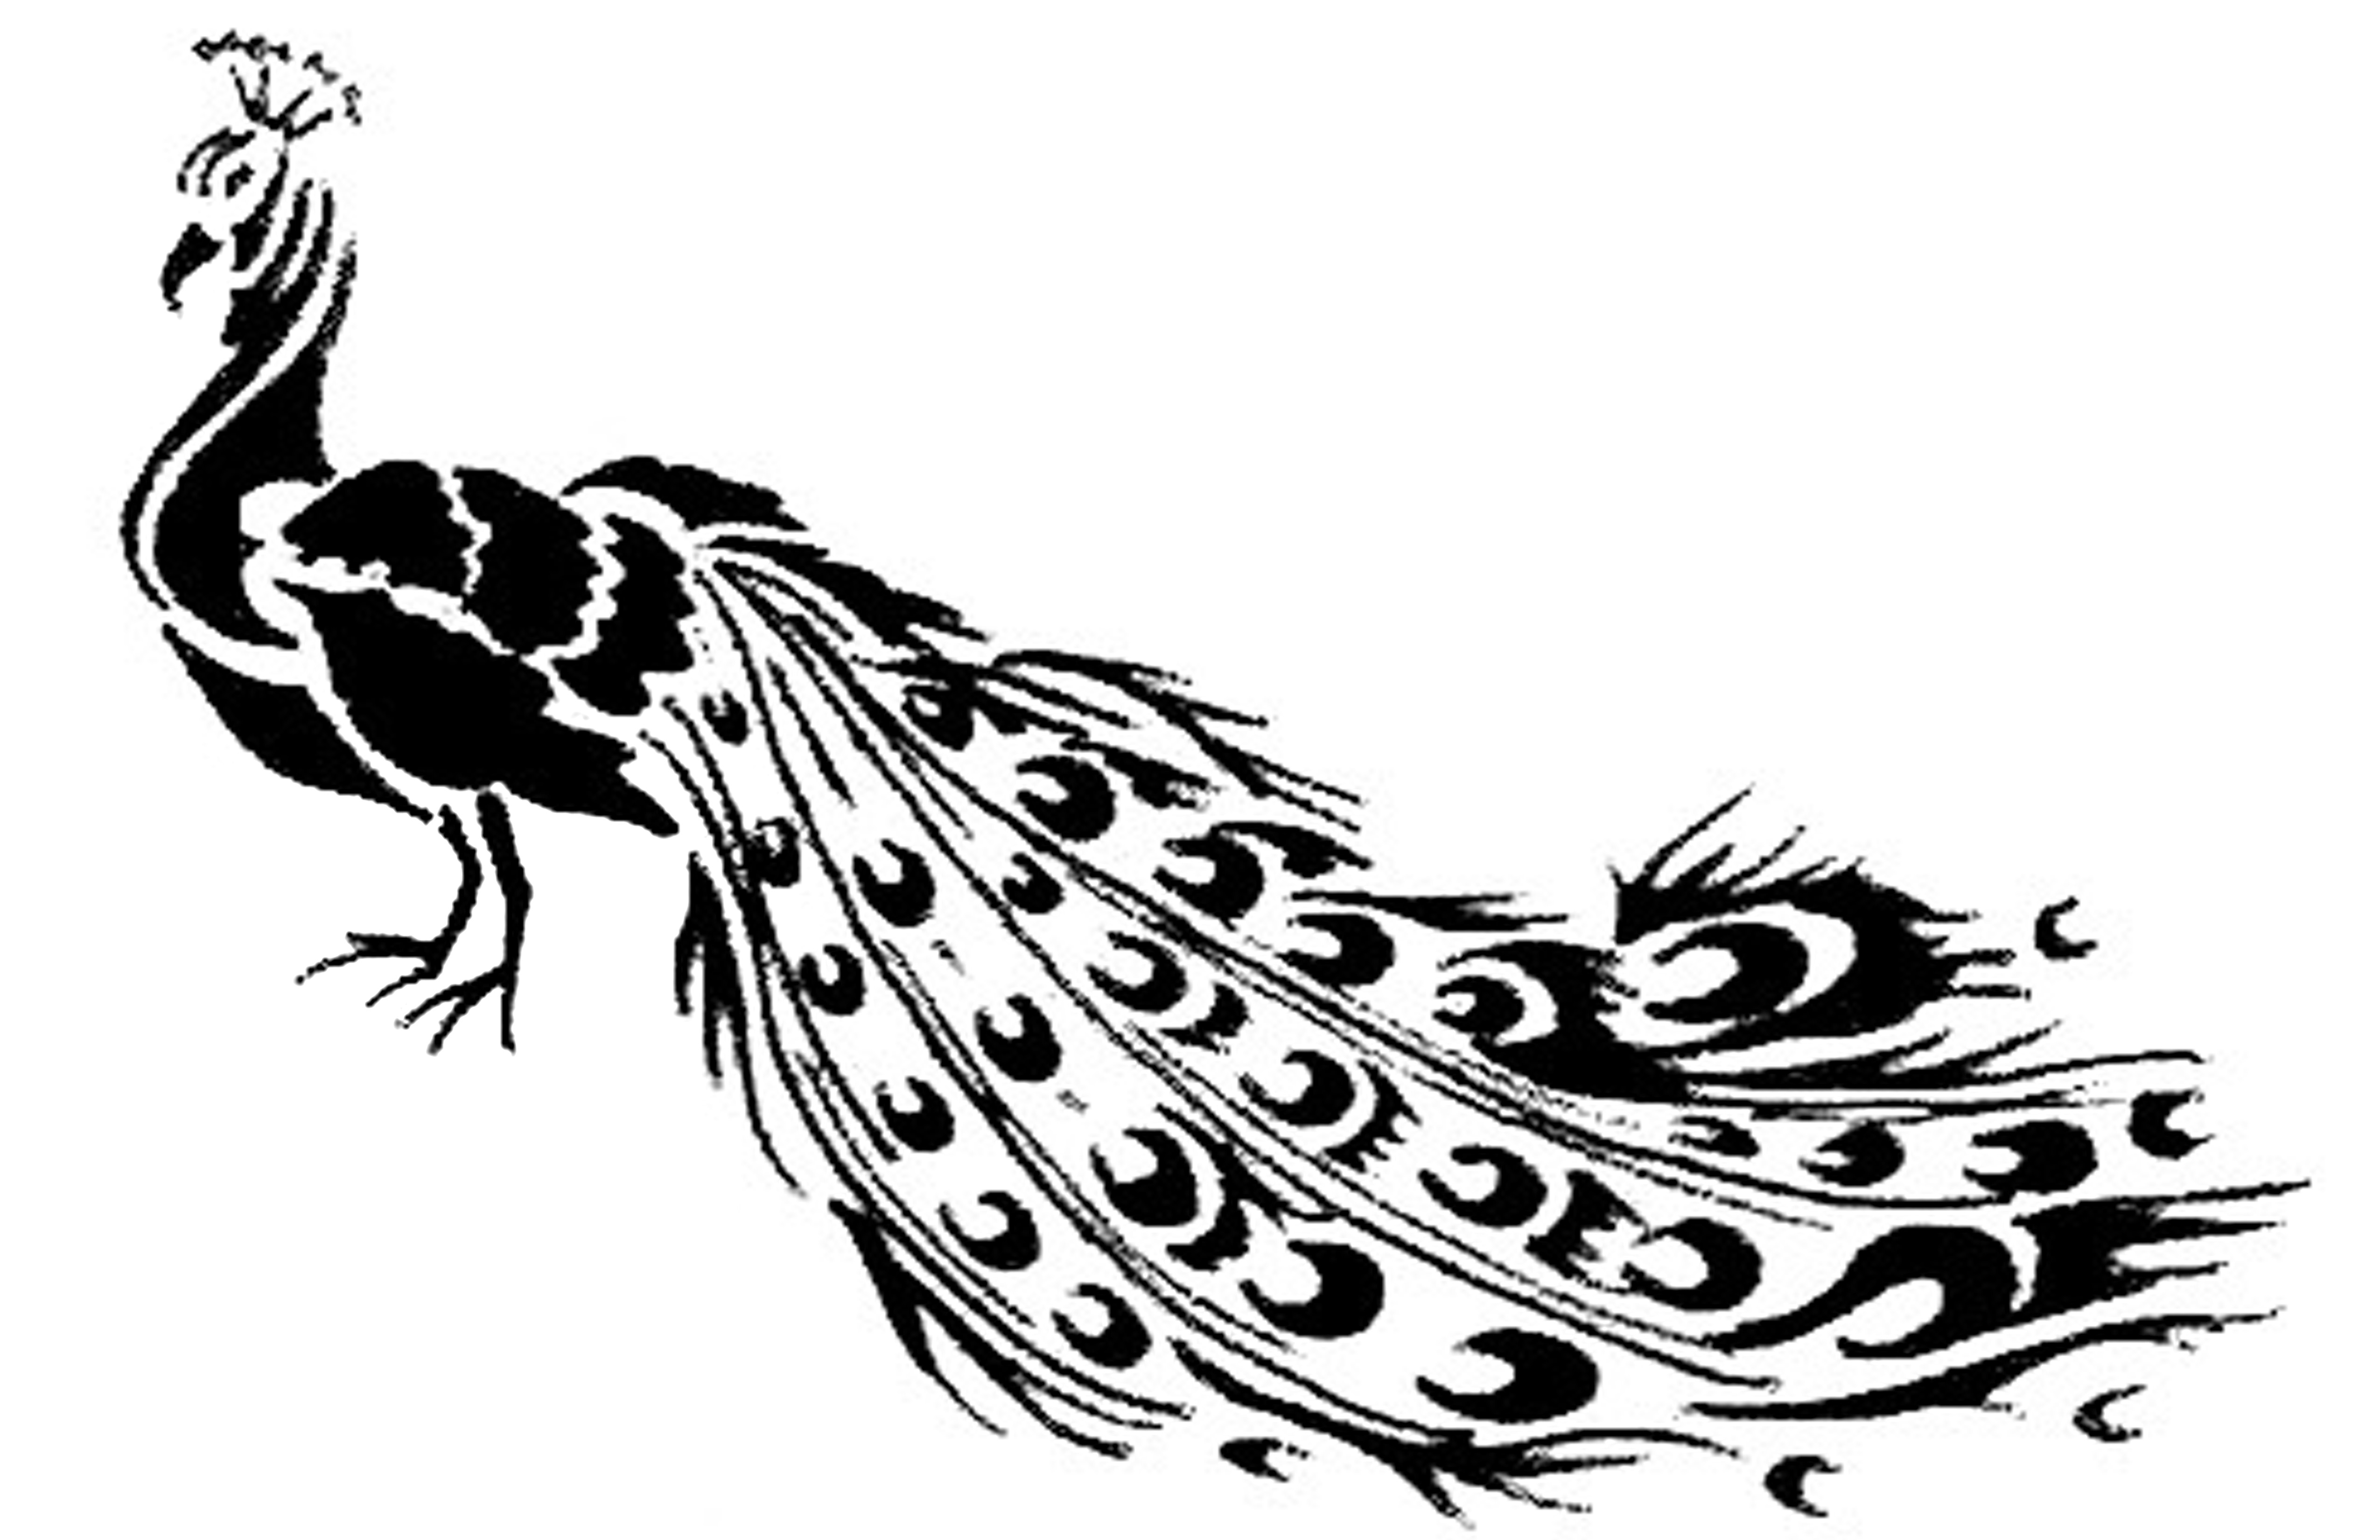 5100x3300 peacock drawing LUCMG